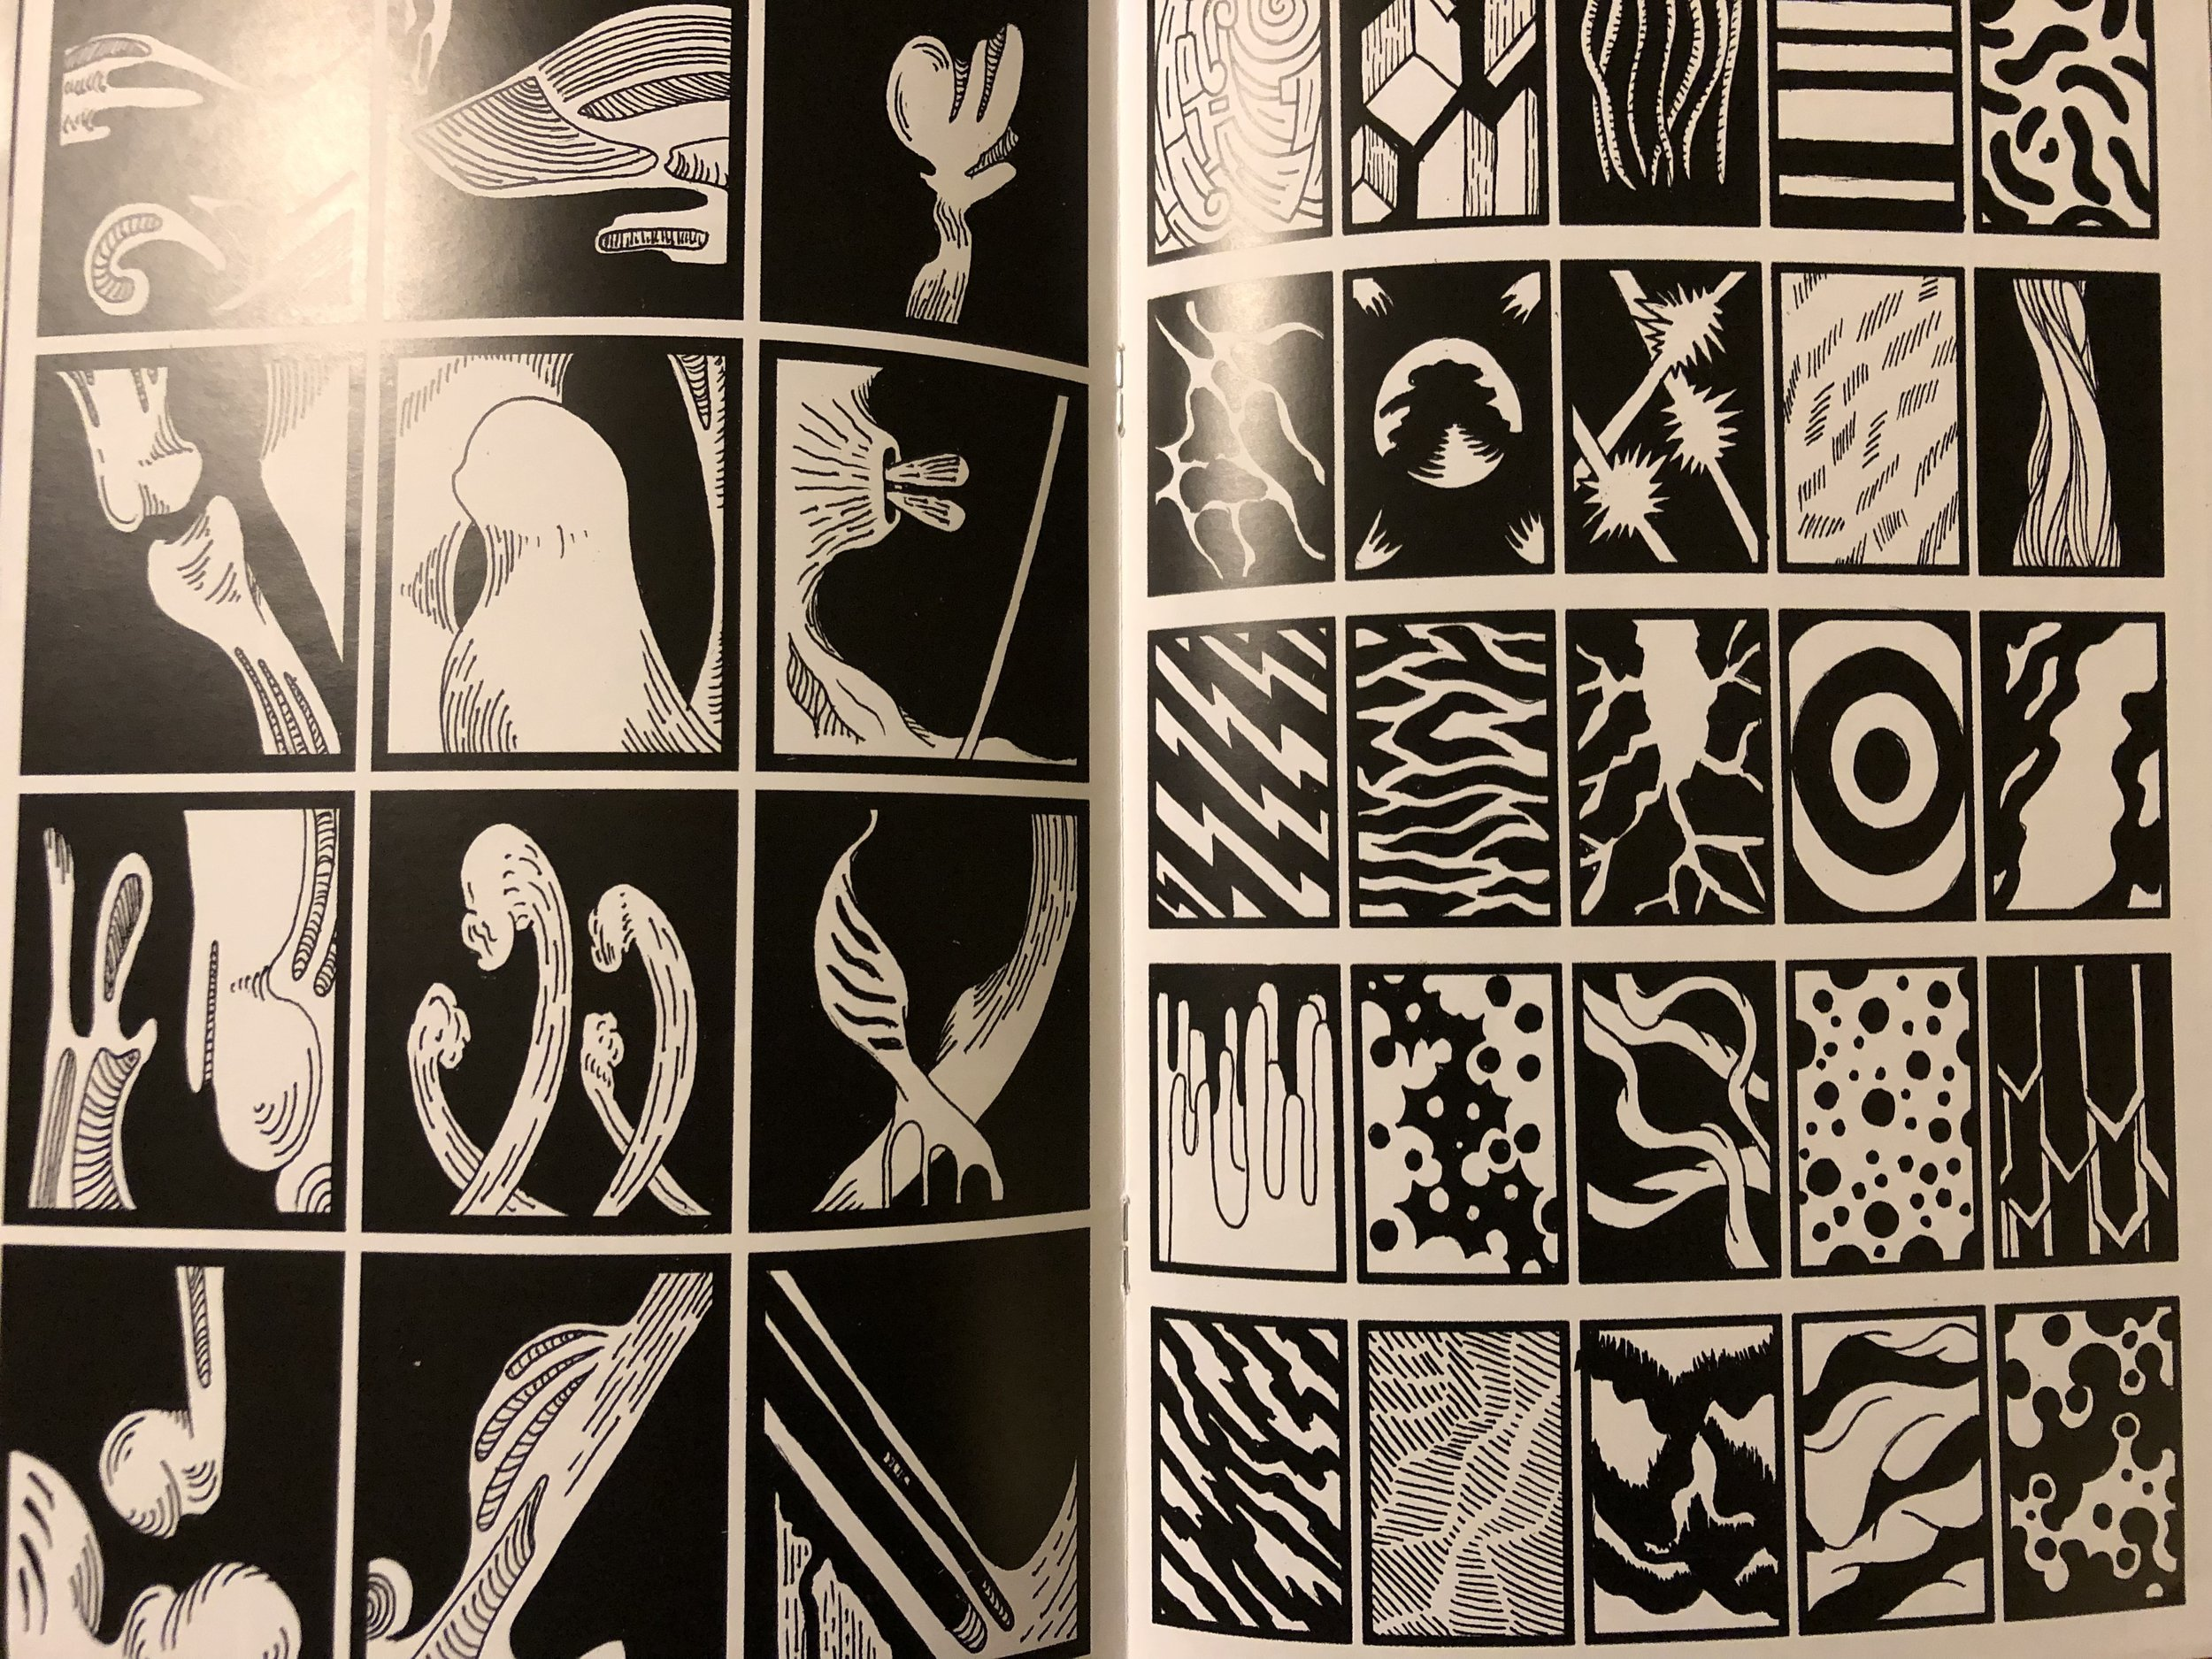 A sampling from issue 1 of Geist's  The Tourist